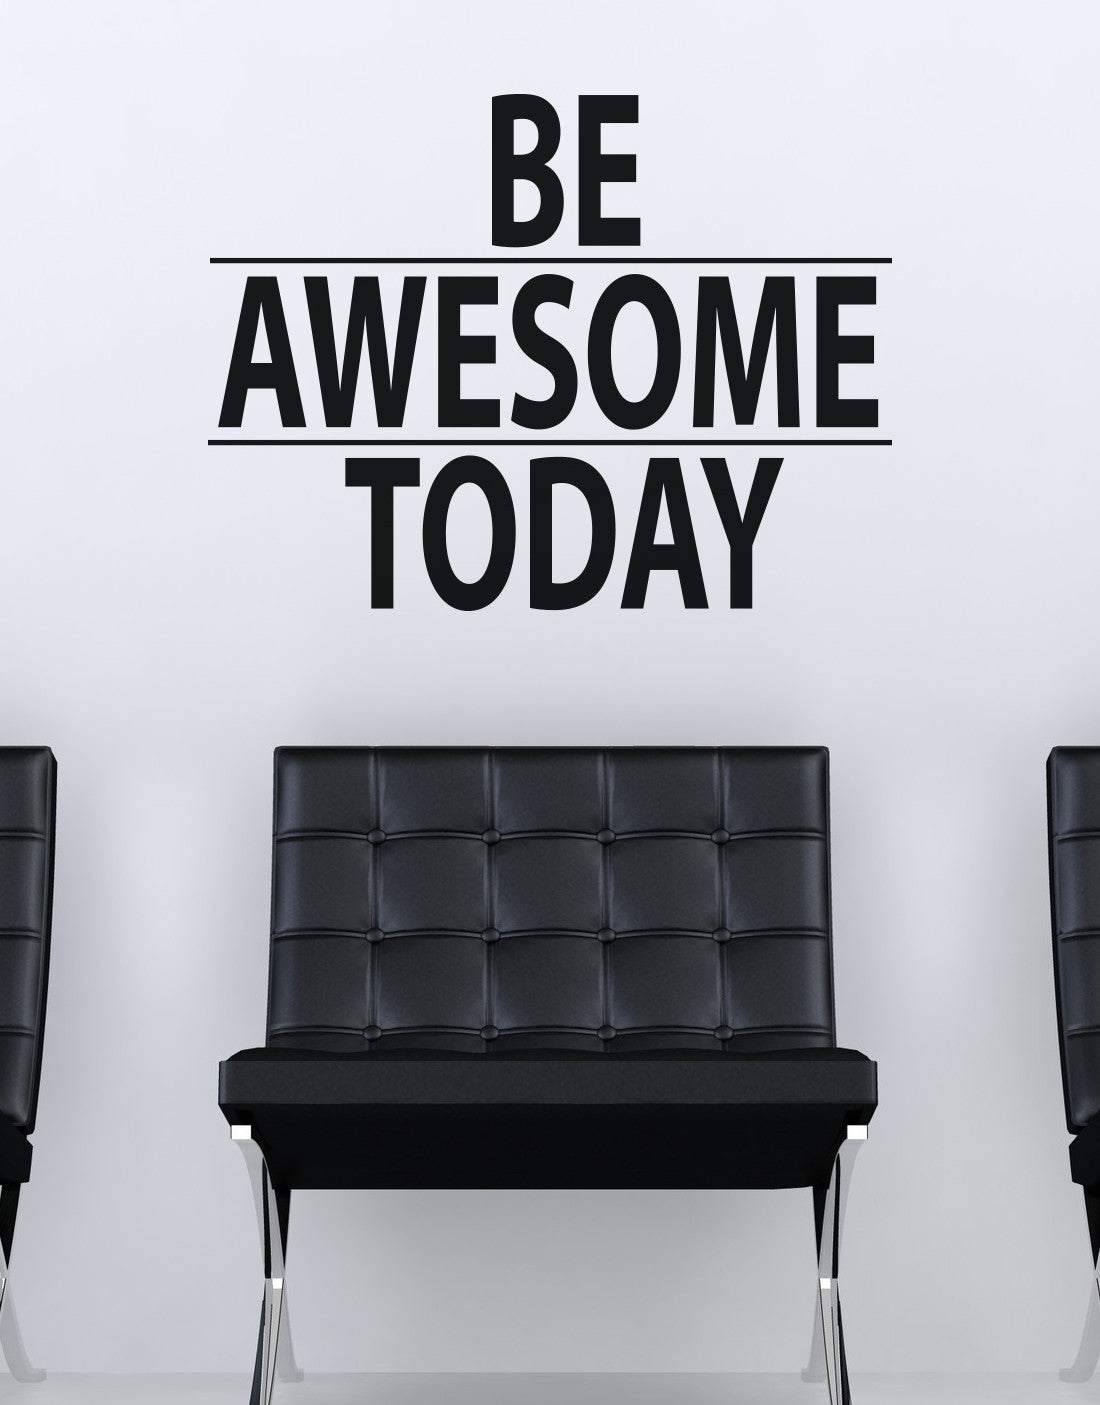 Beautiful Be Awesome Today Motivational Quote Wall Decal Sticker #6013